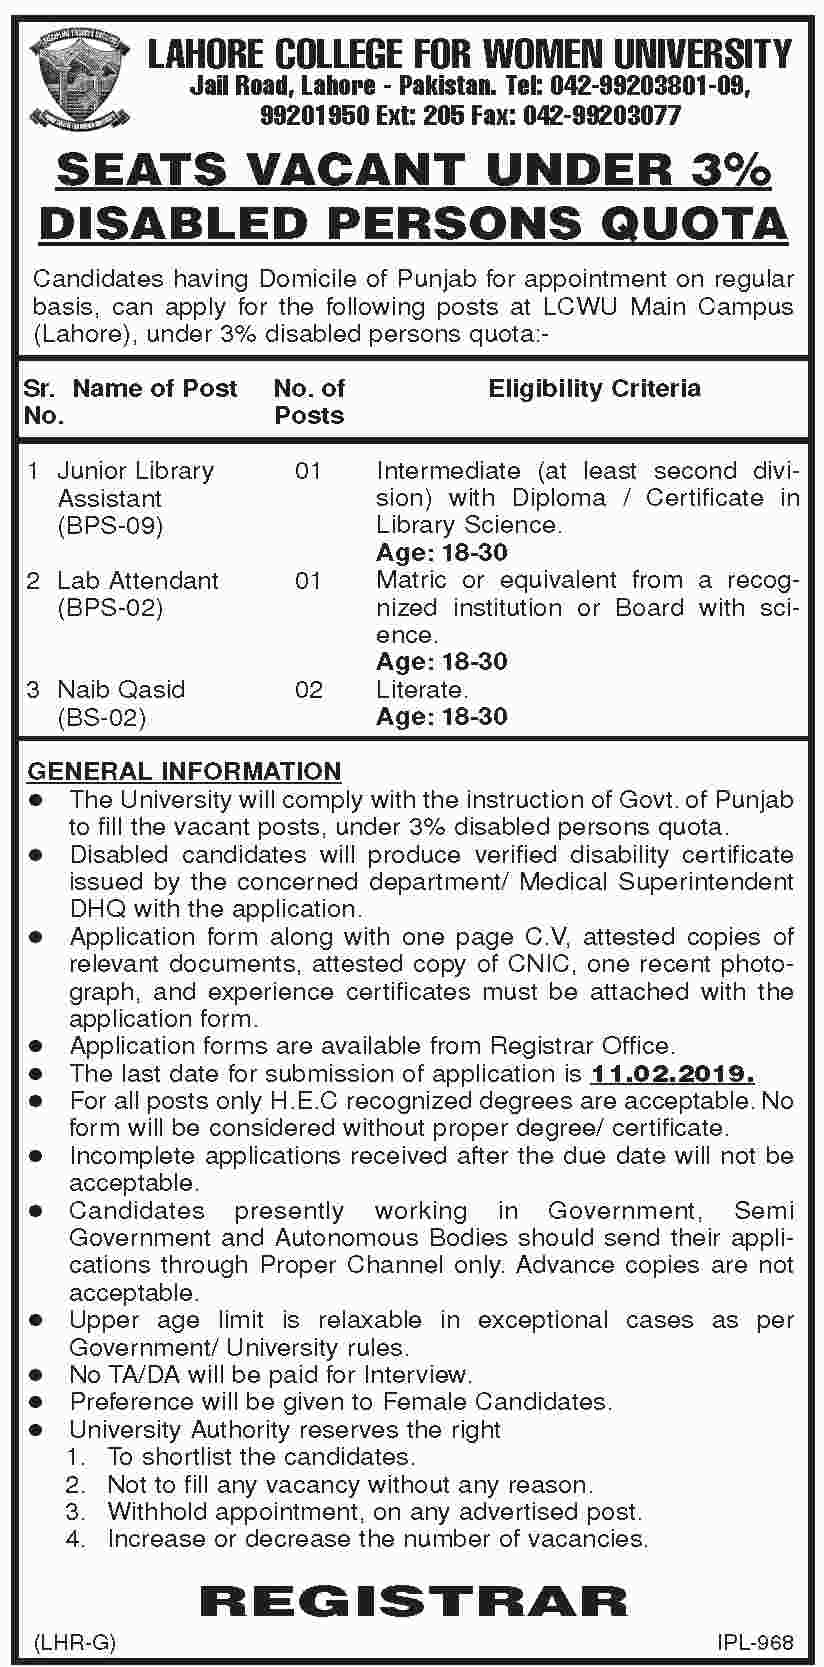 Lahore College For Women University LCWU Jobs 2019 Application Form